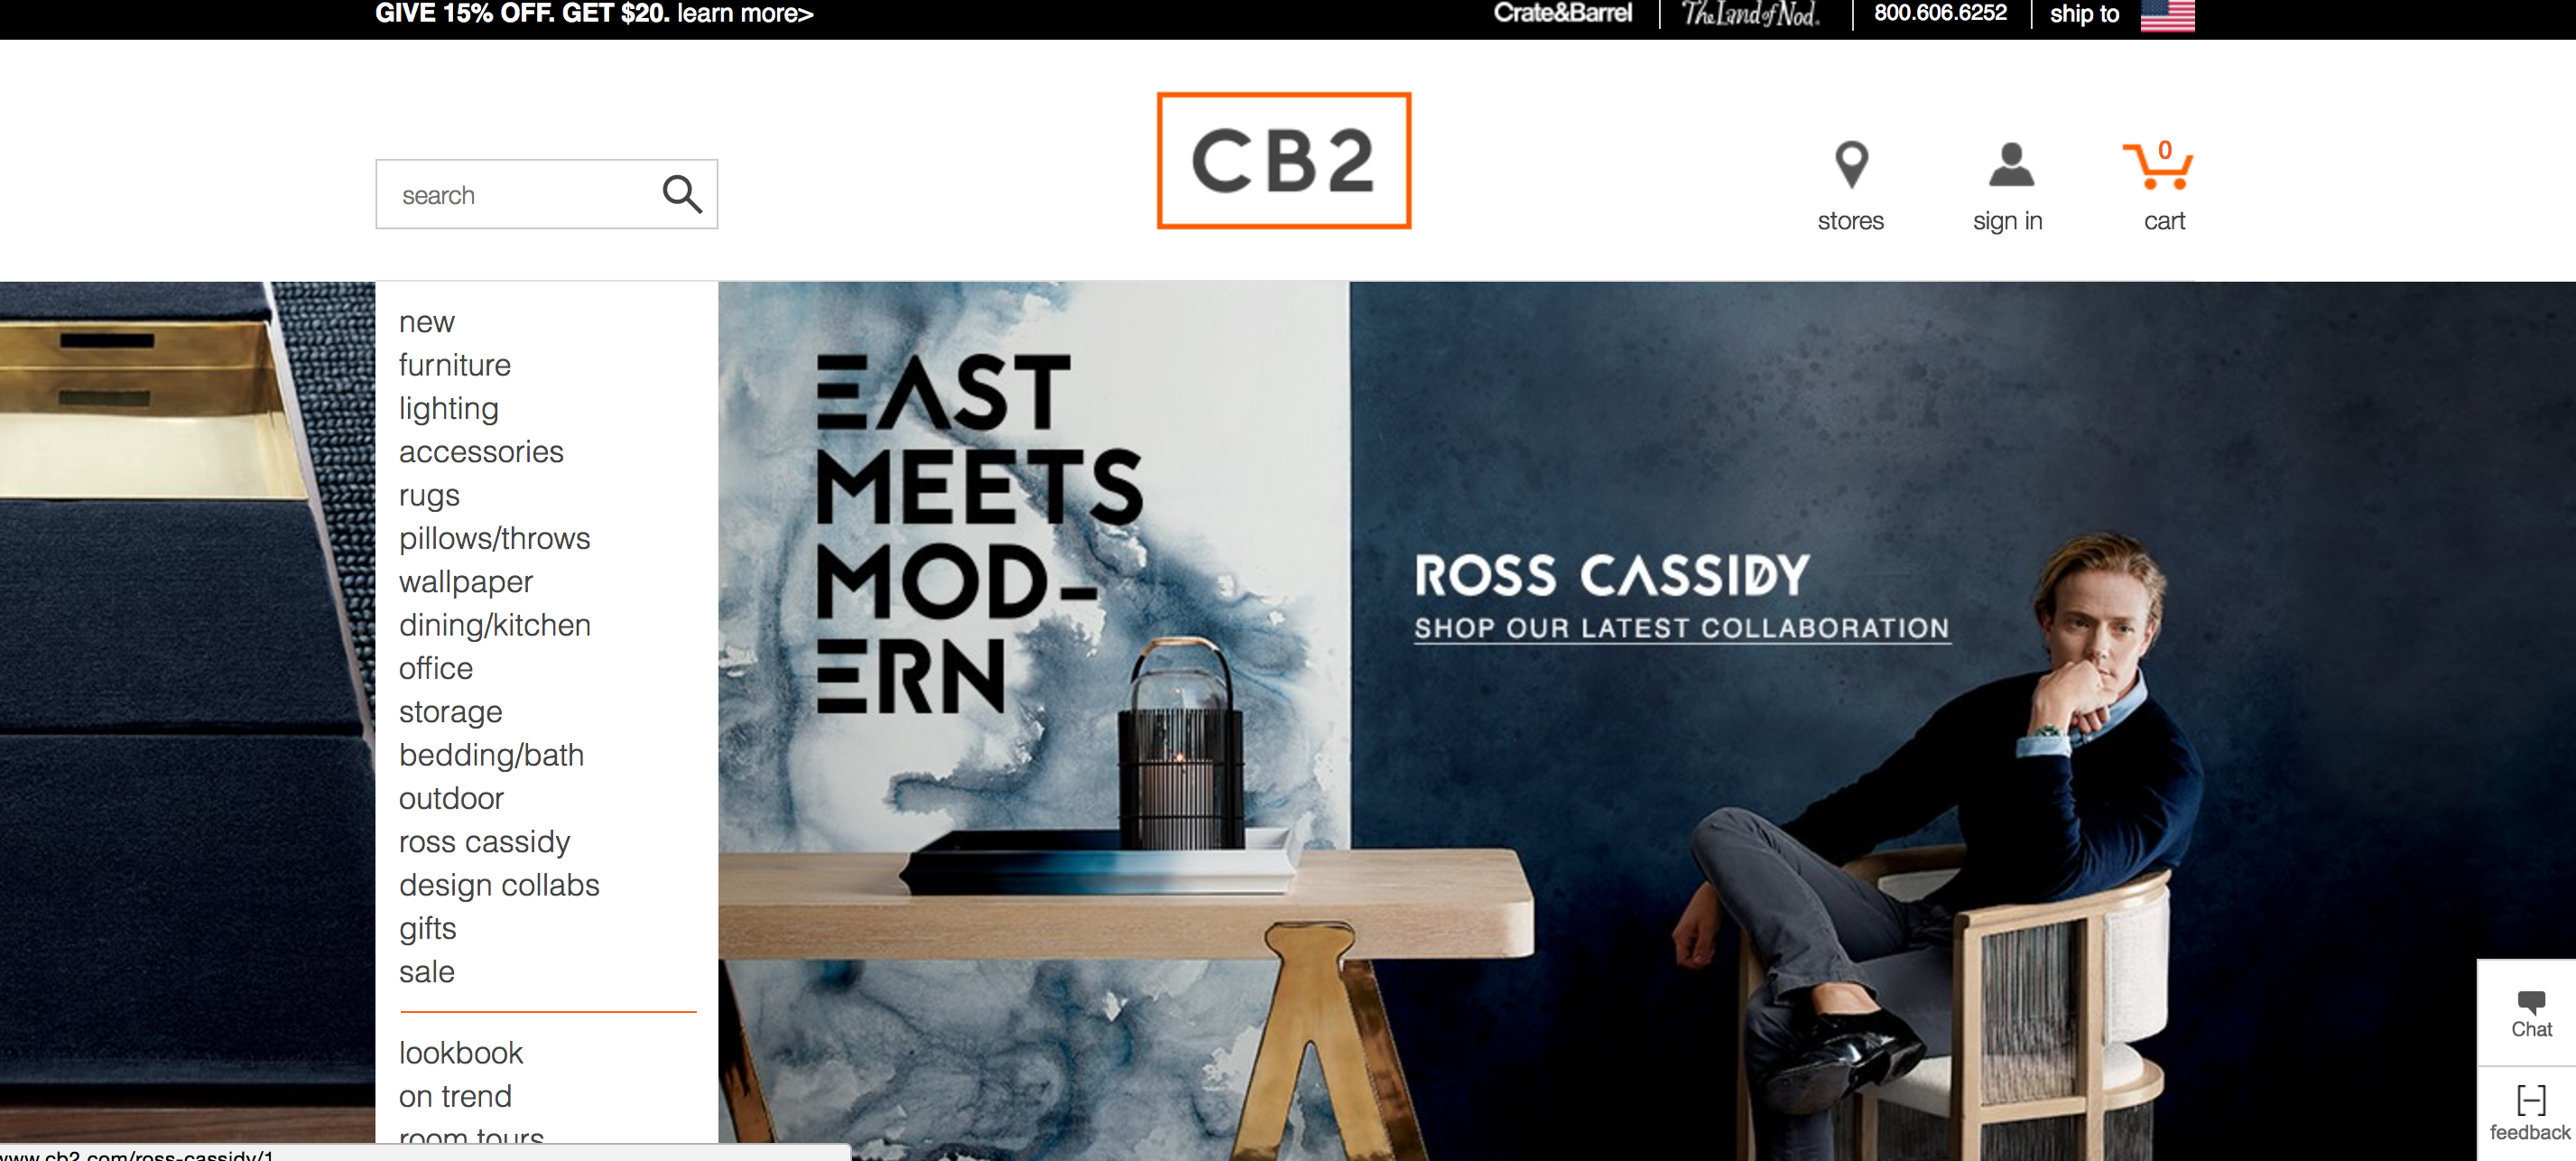 Facebook Ads CB2 Homepage Landing Page Example